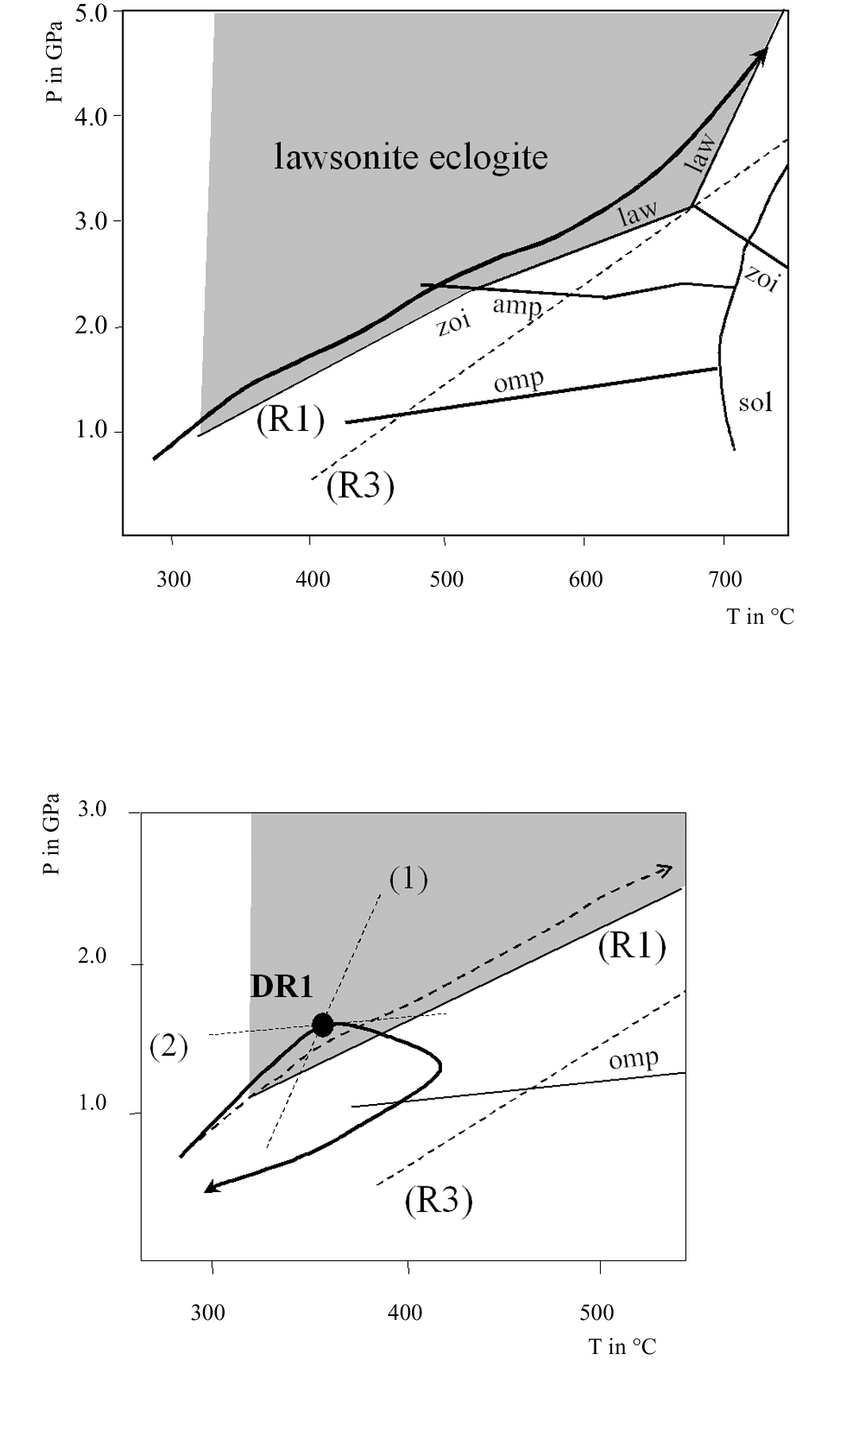 medium resolution of  a pt diagram illustrating the stability field of lawsonite eclogite shaded and